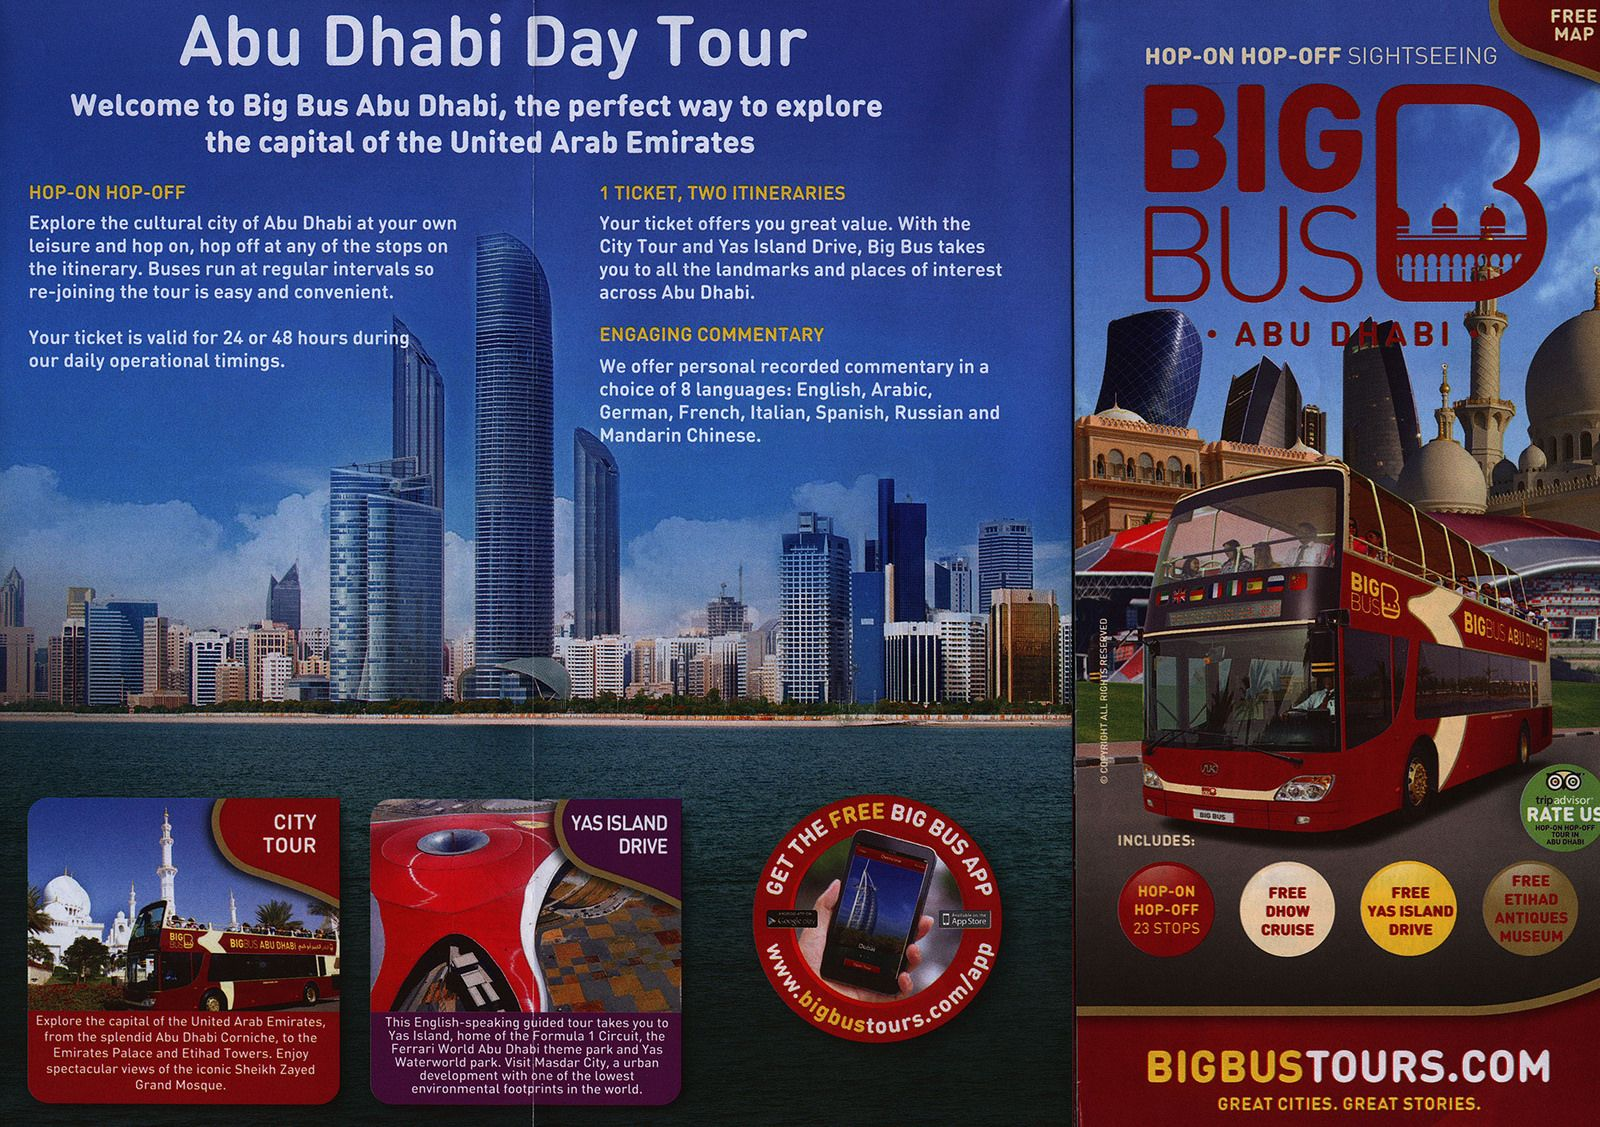 travel and tourism in uae Looking for travel & tourism jobs in uae search for travel & tourism careers and vacancies with dubizzlecom submit your cv for free.